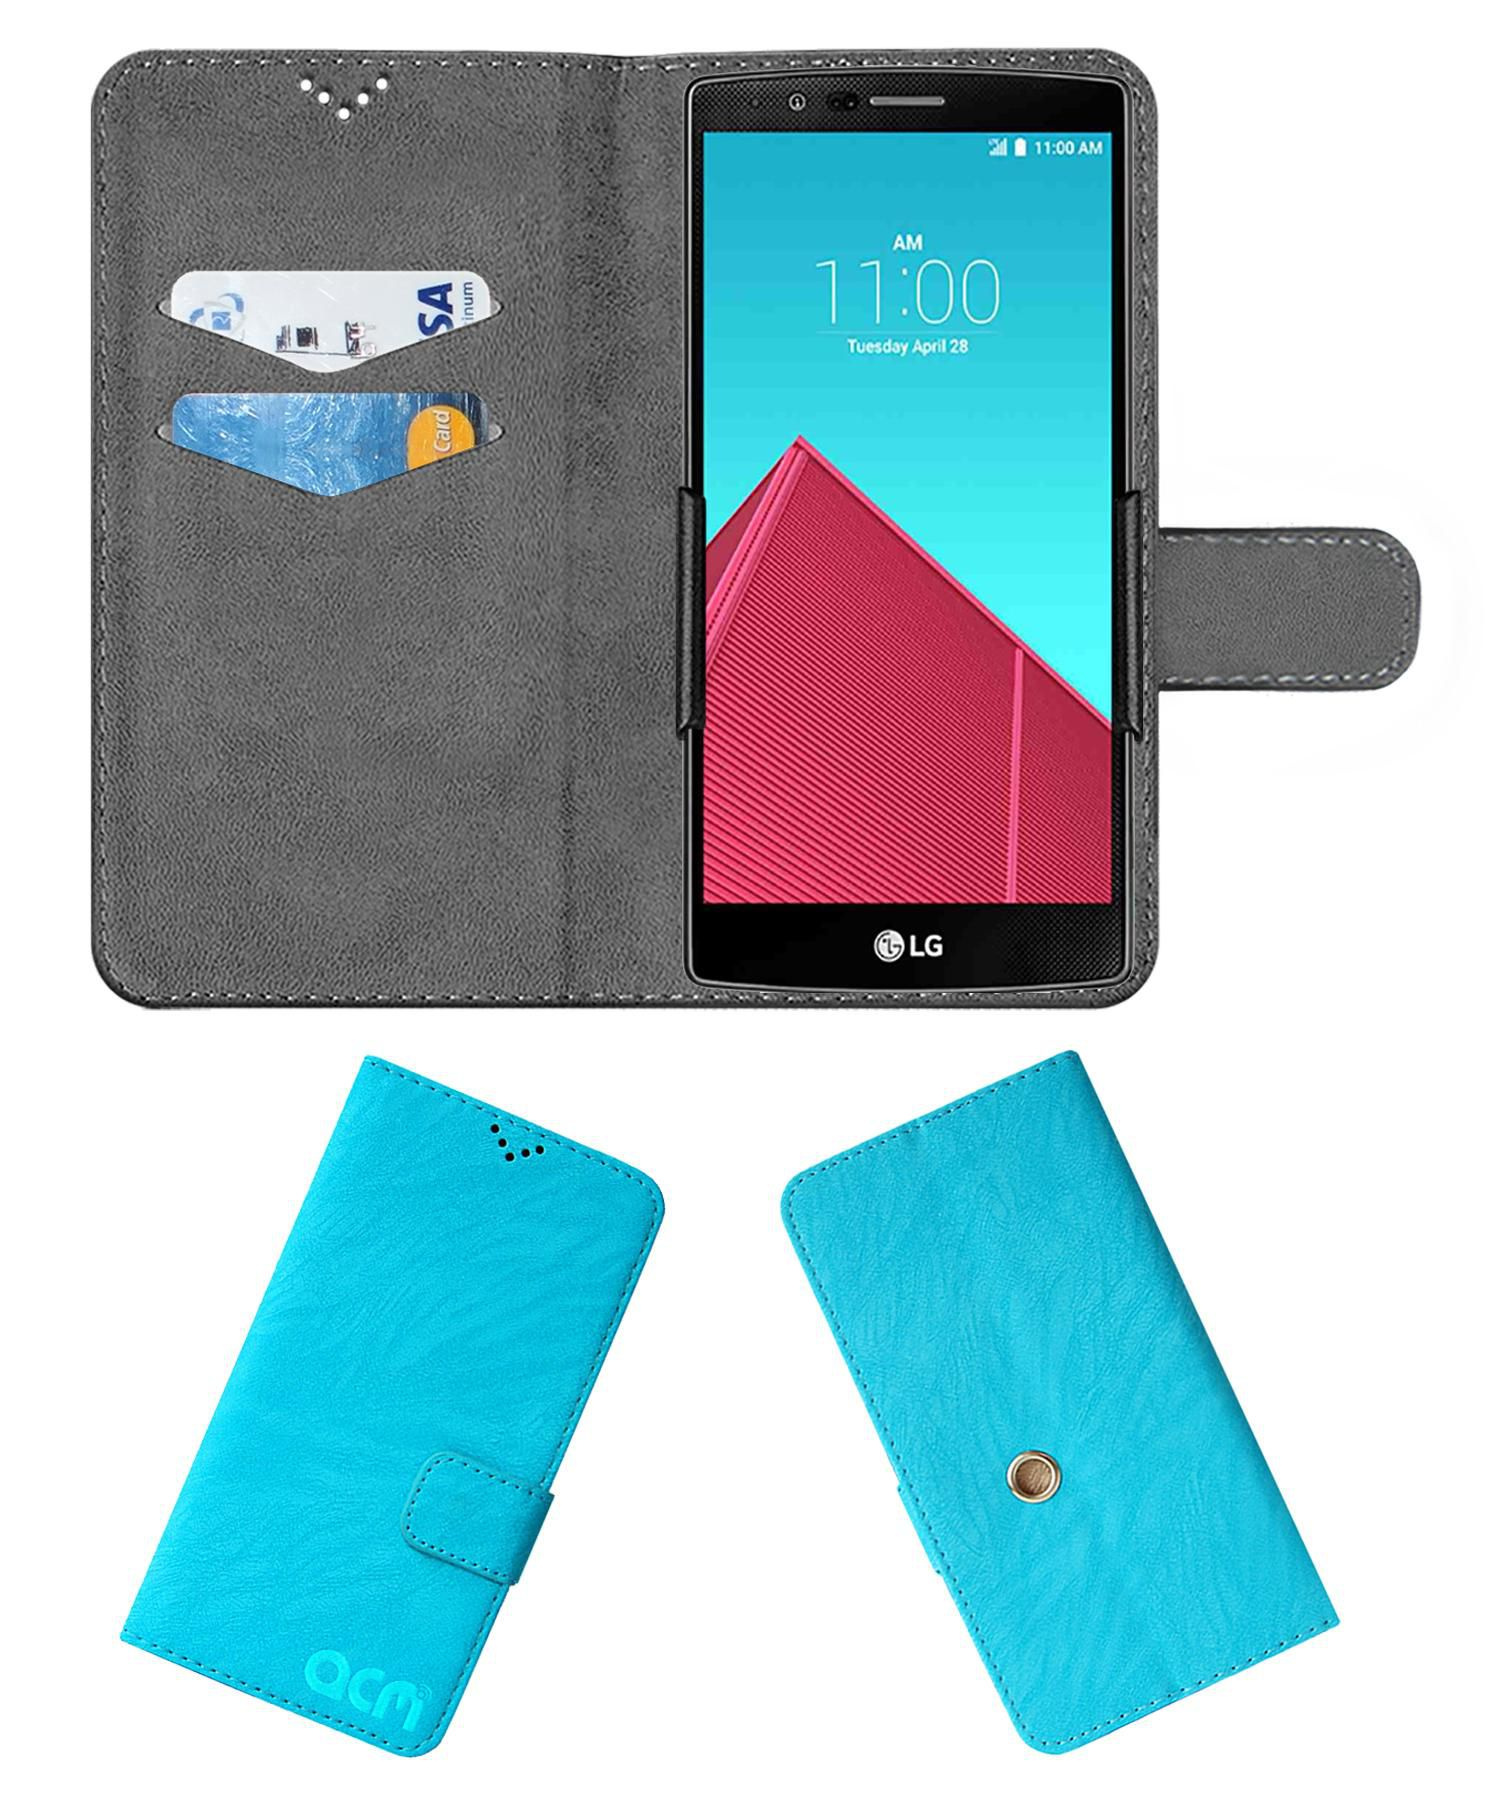 Lg G4 Flip Cover by ACM - Blue Clip holder to hold your mobile securely